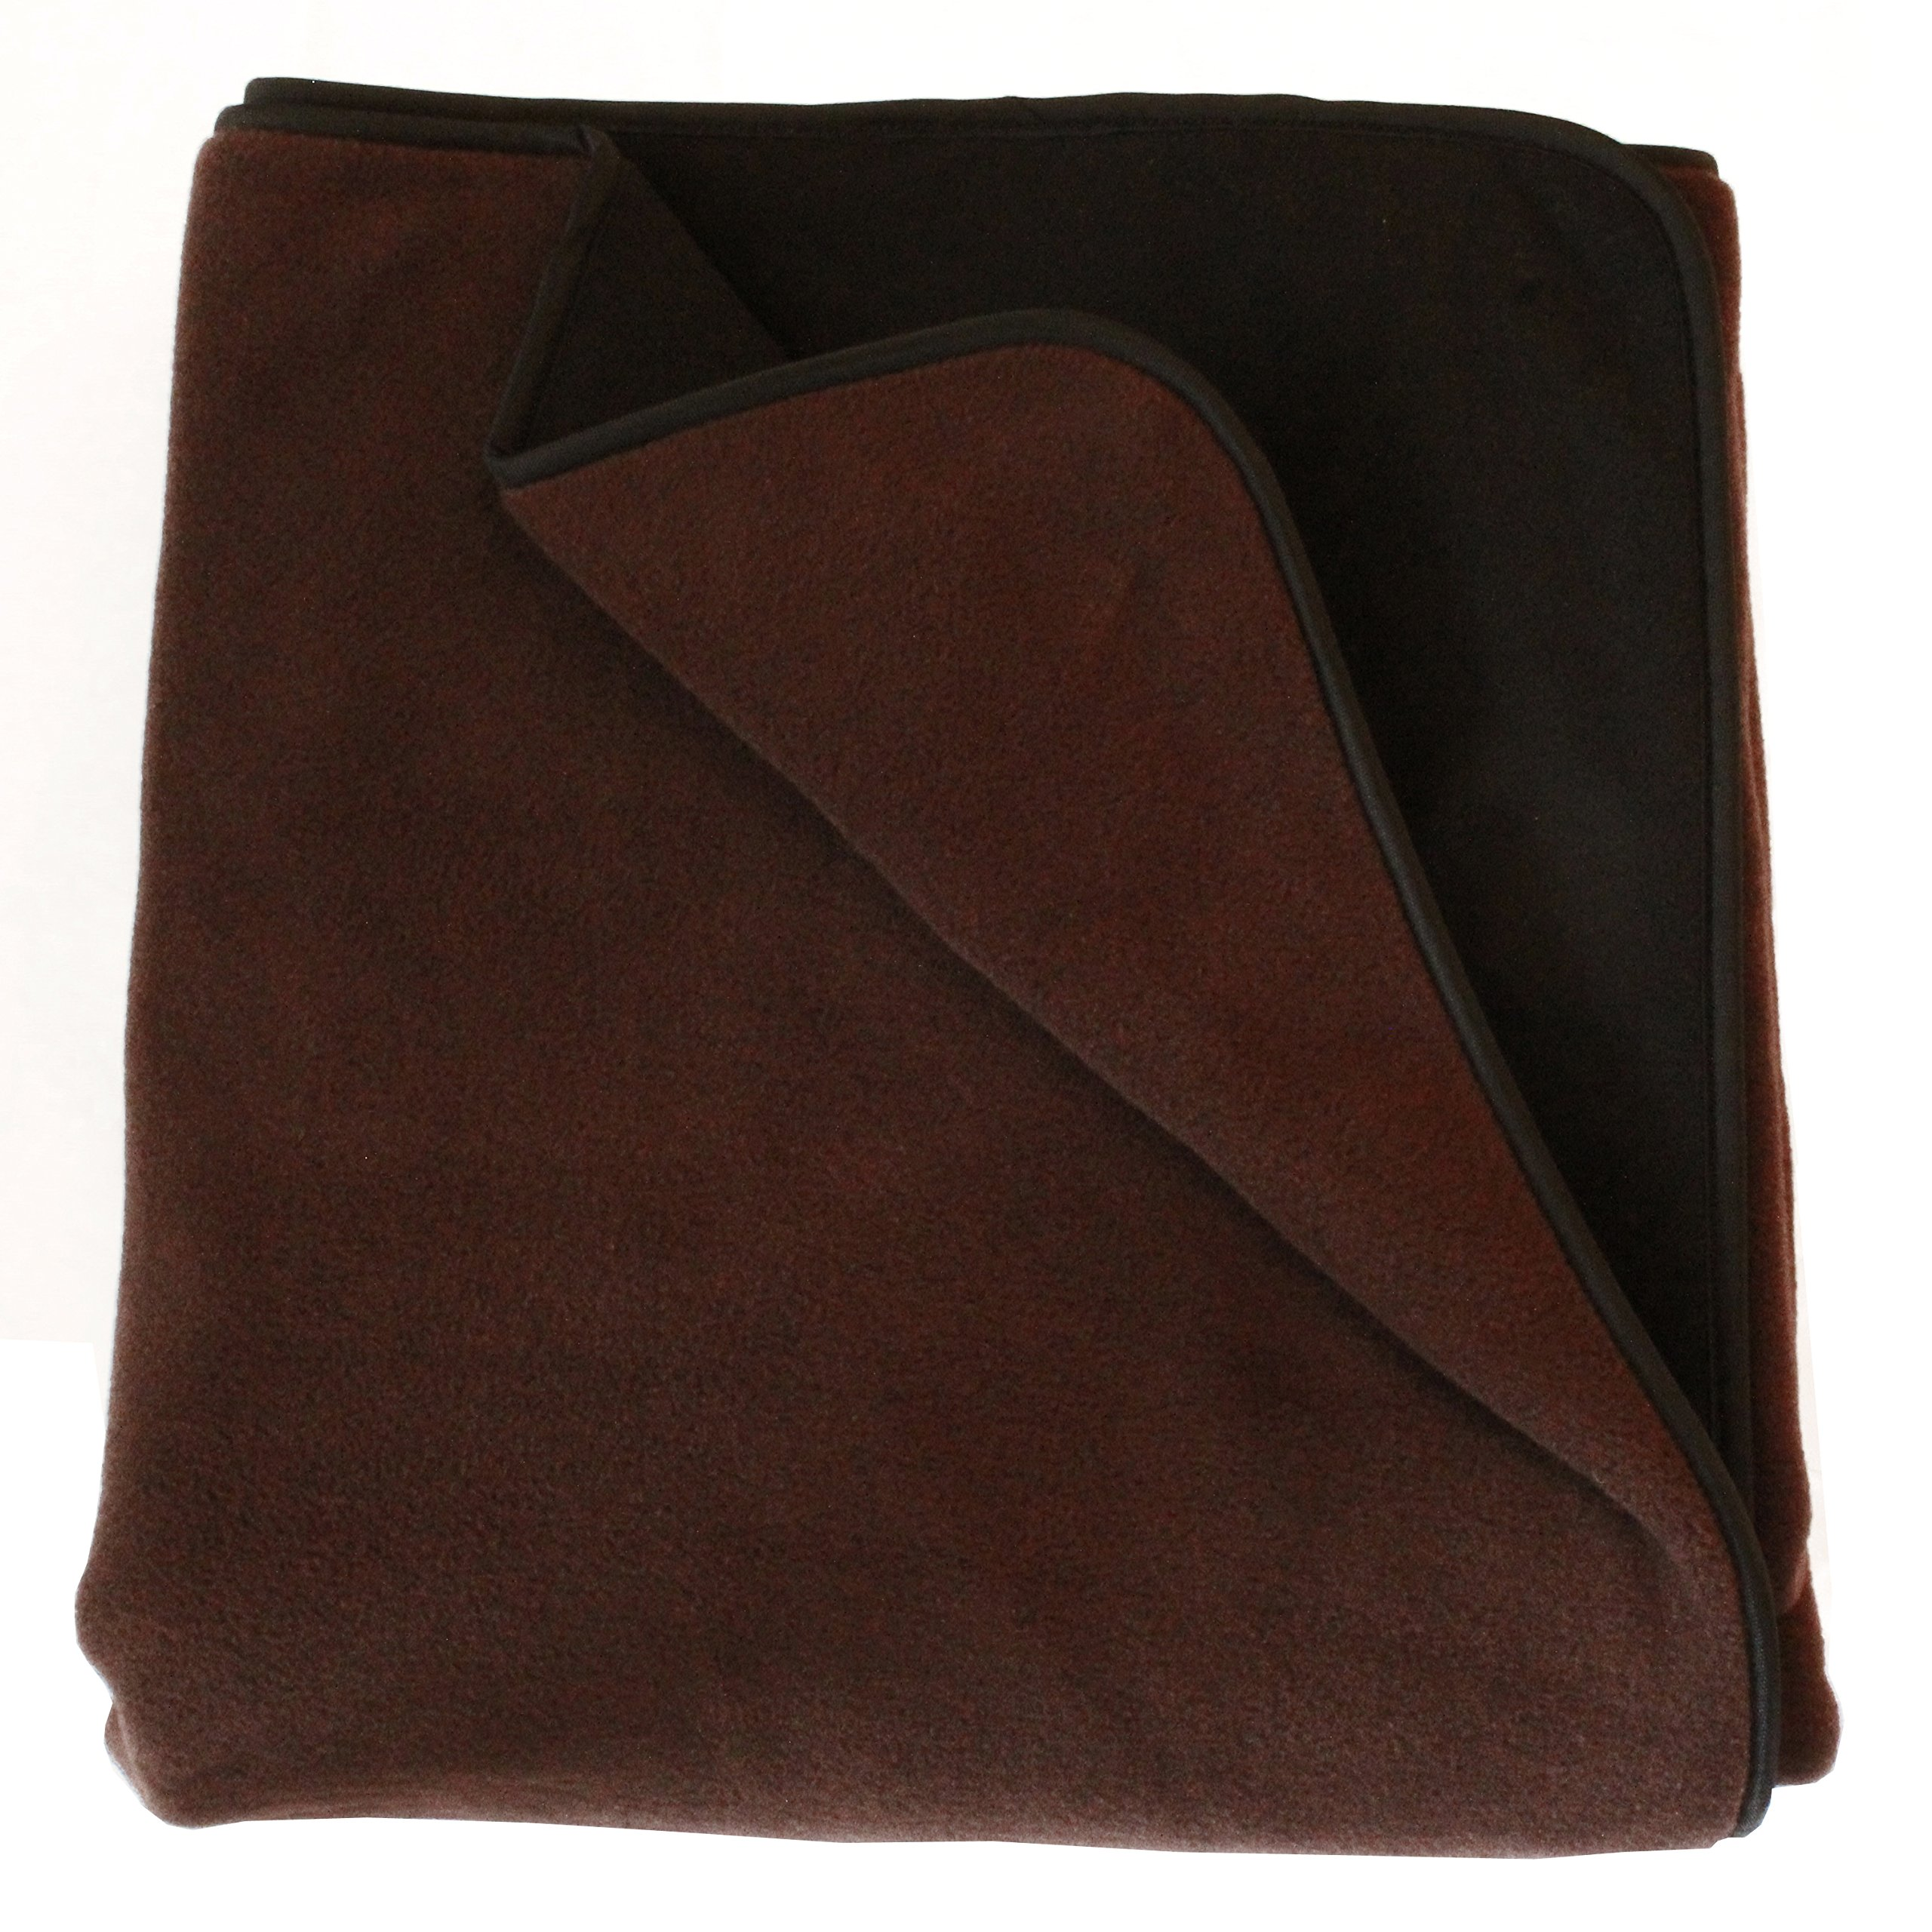 100% Waterproof Mambe Pet Blanket (Large 58''x 84'', Chocolate)